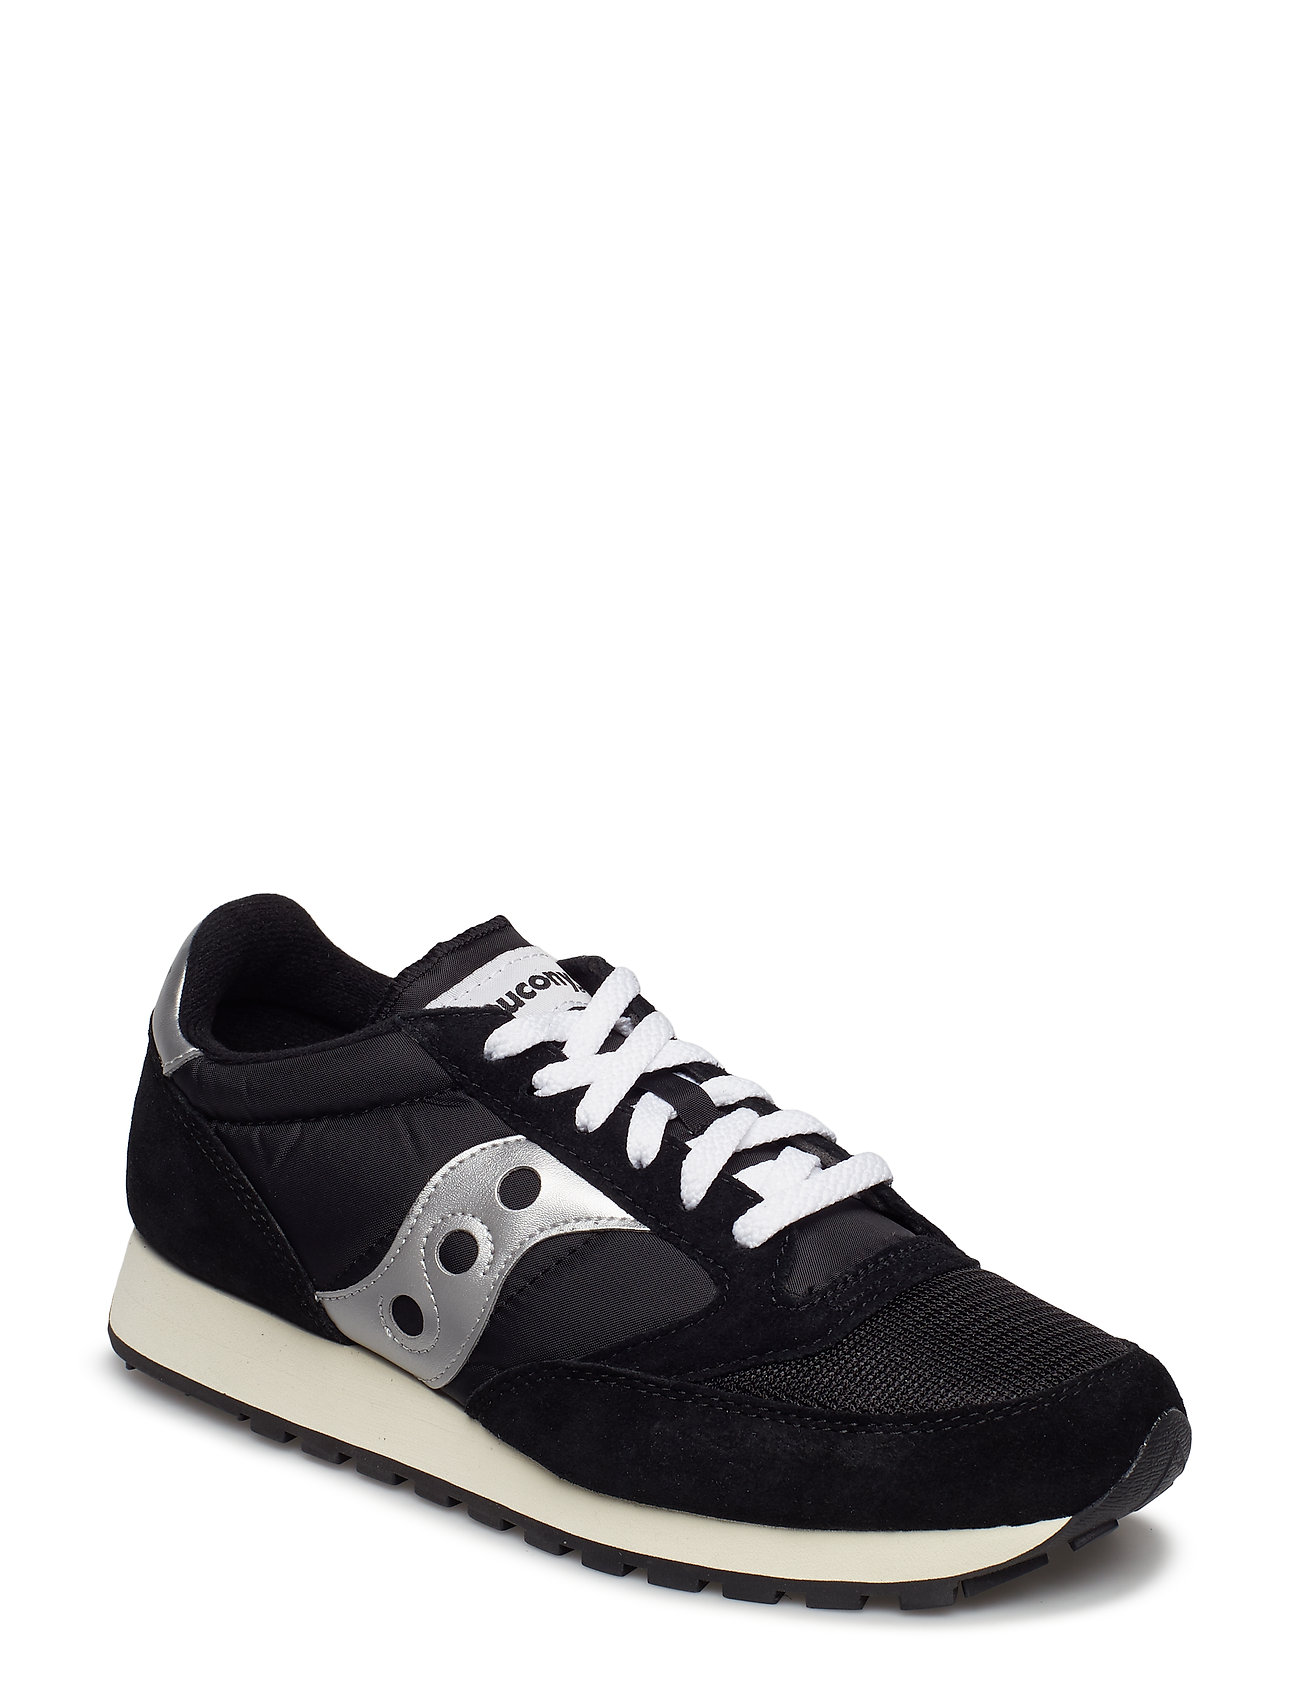 Saucony Originals JAZZ ORIGINAL VINTAGE - BLK/WHT